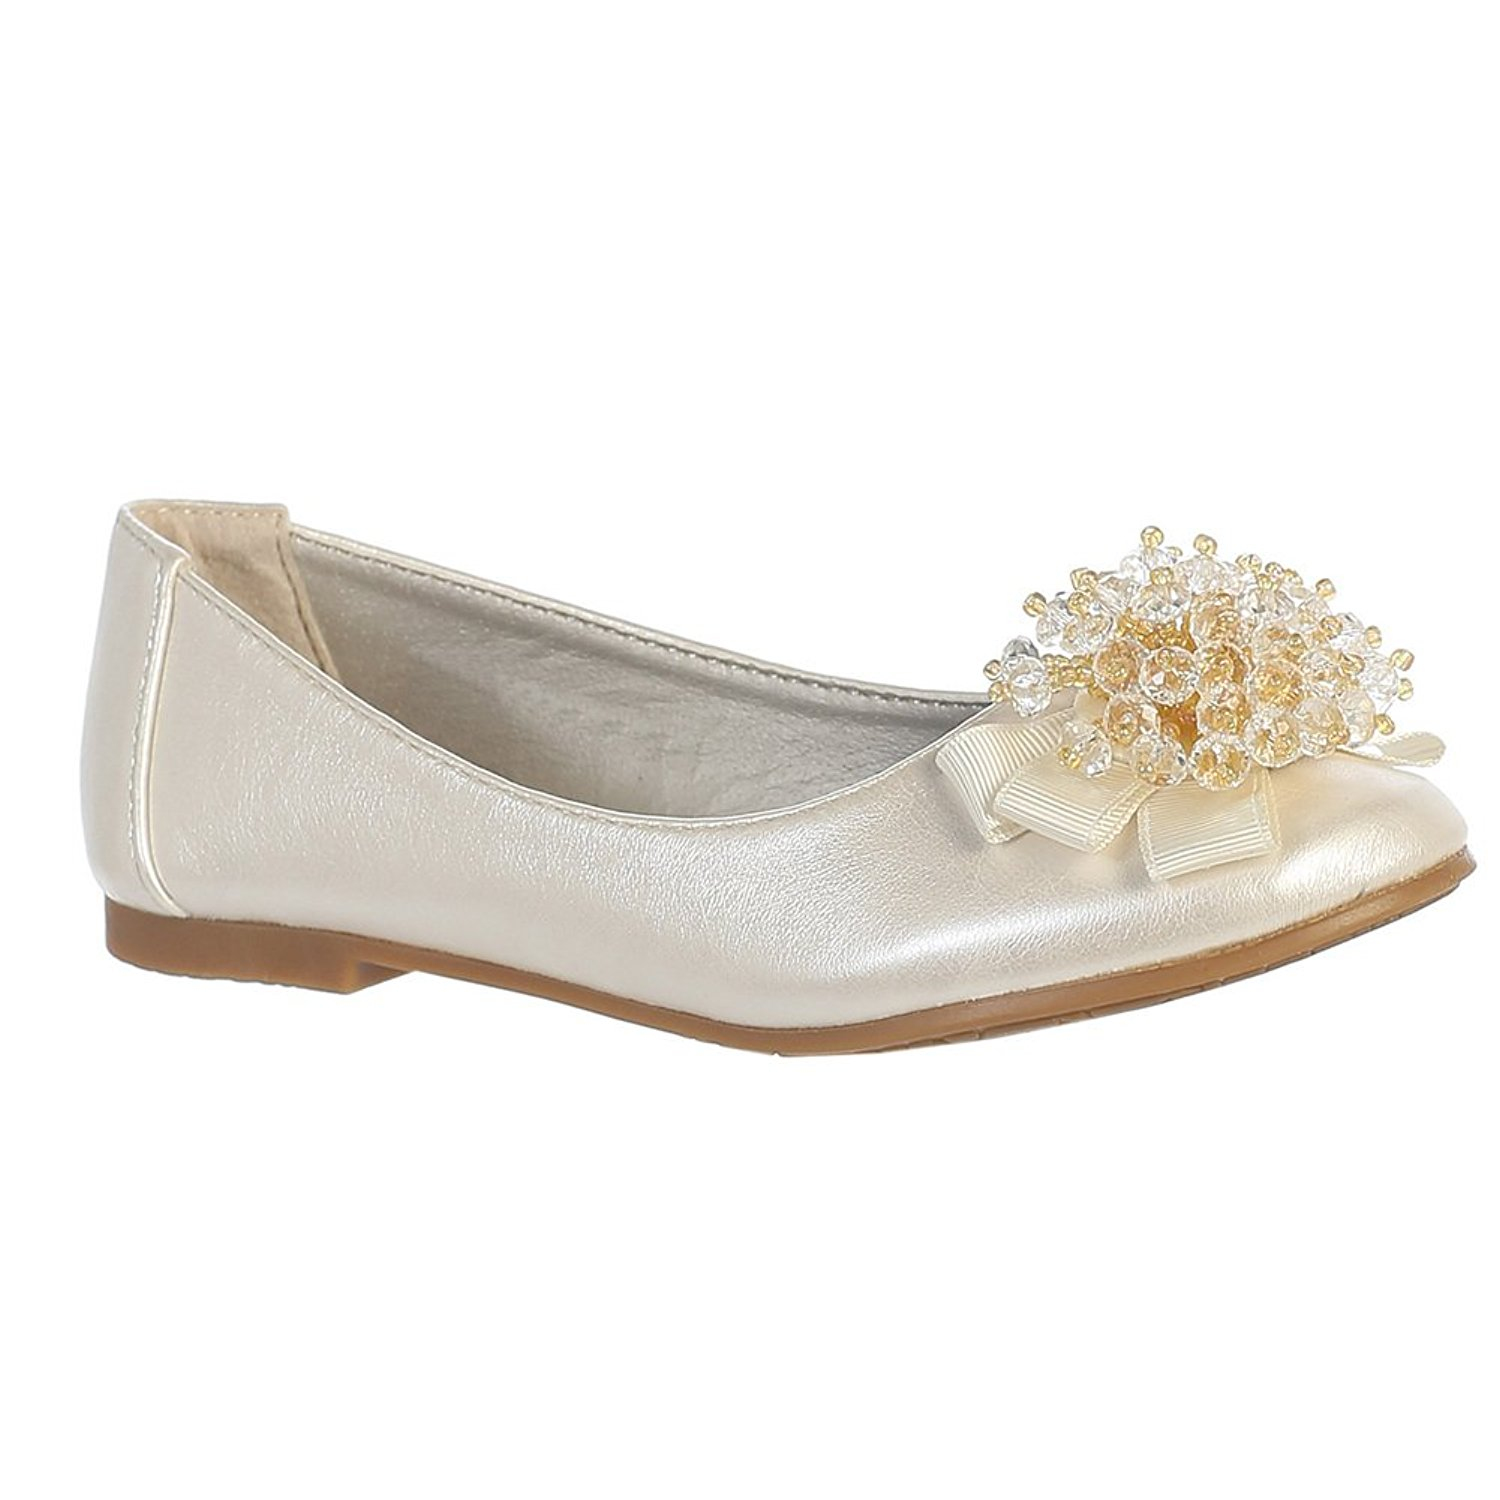 Lito Girls Ivory Crystal Bead Bow Anna Special Occasion Dress Shoes 5-10 Toddler